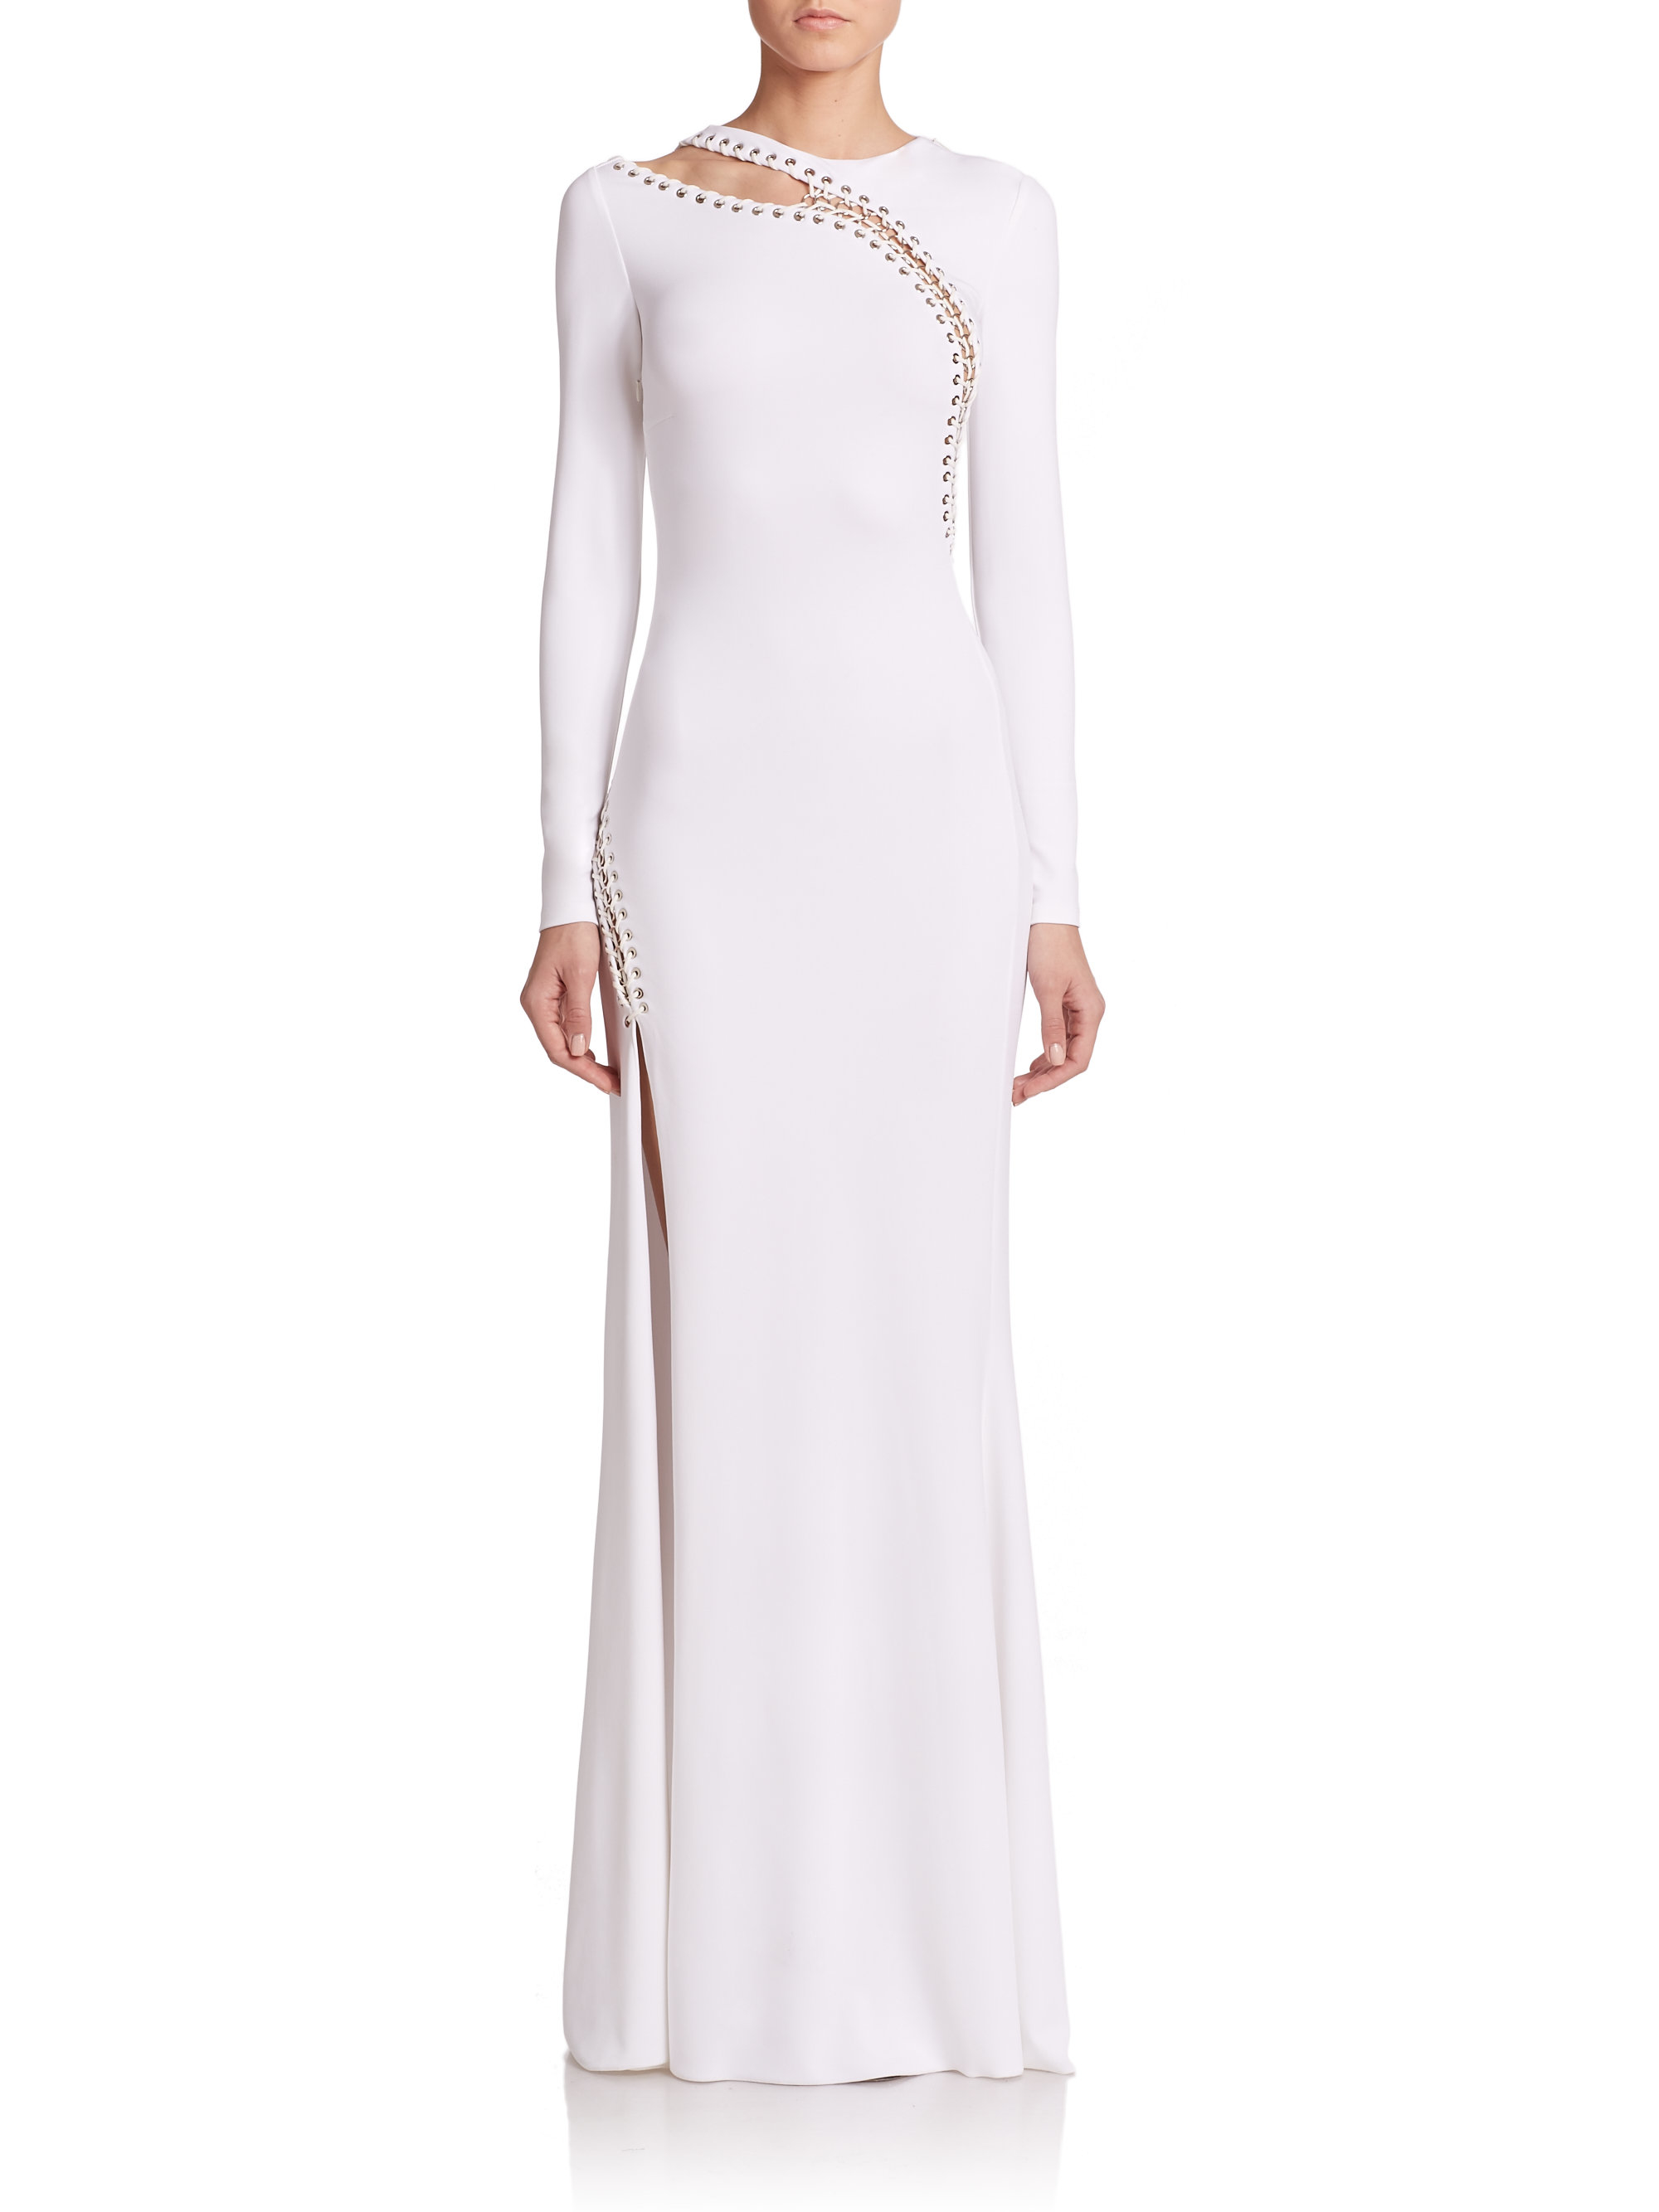 Emilio pucci Grommet-detail Gown in White | Lyst